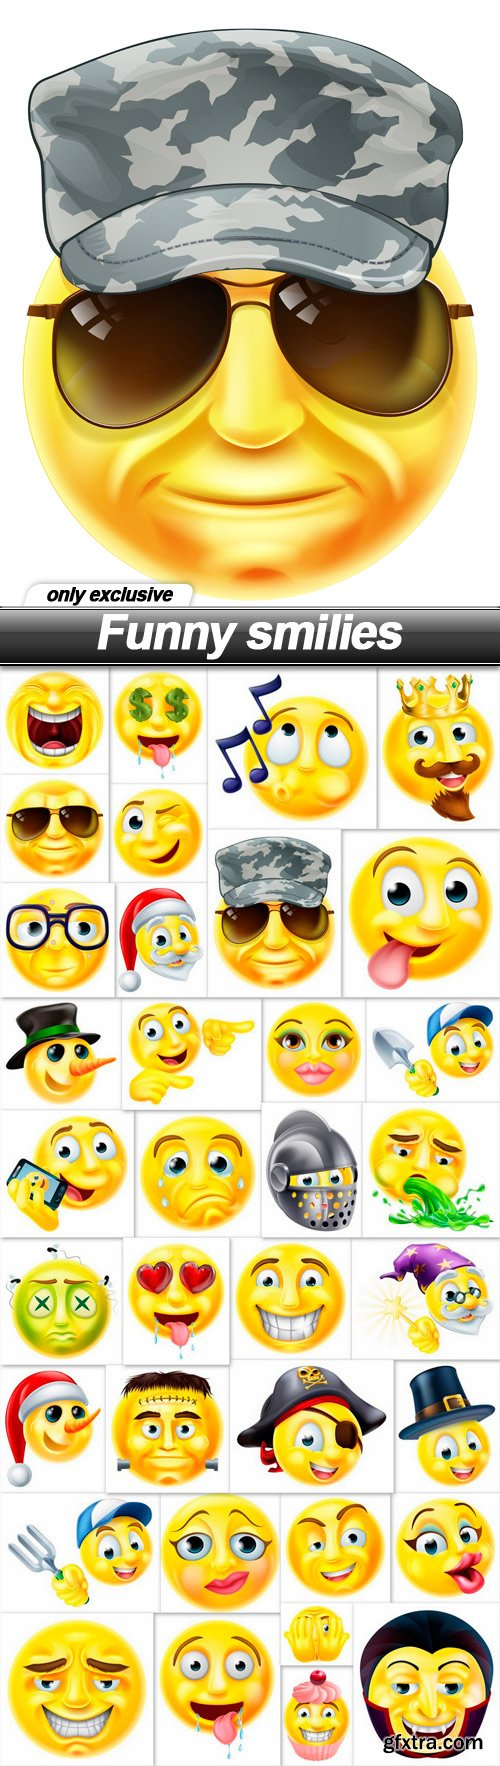 Funny smilies - 35 EPS